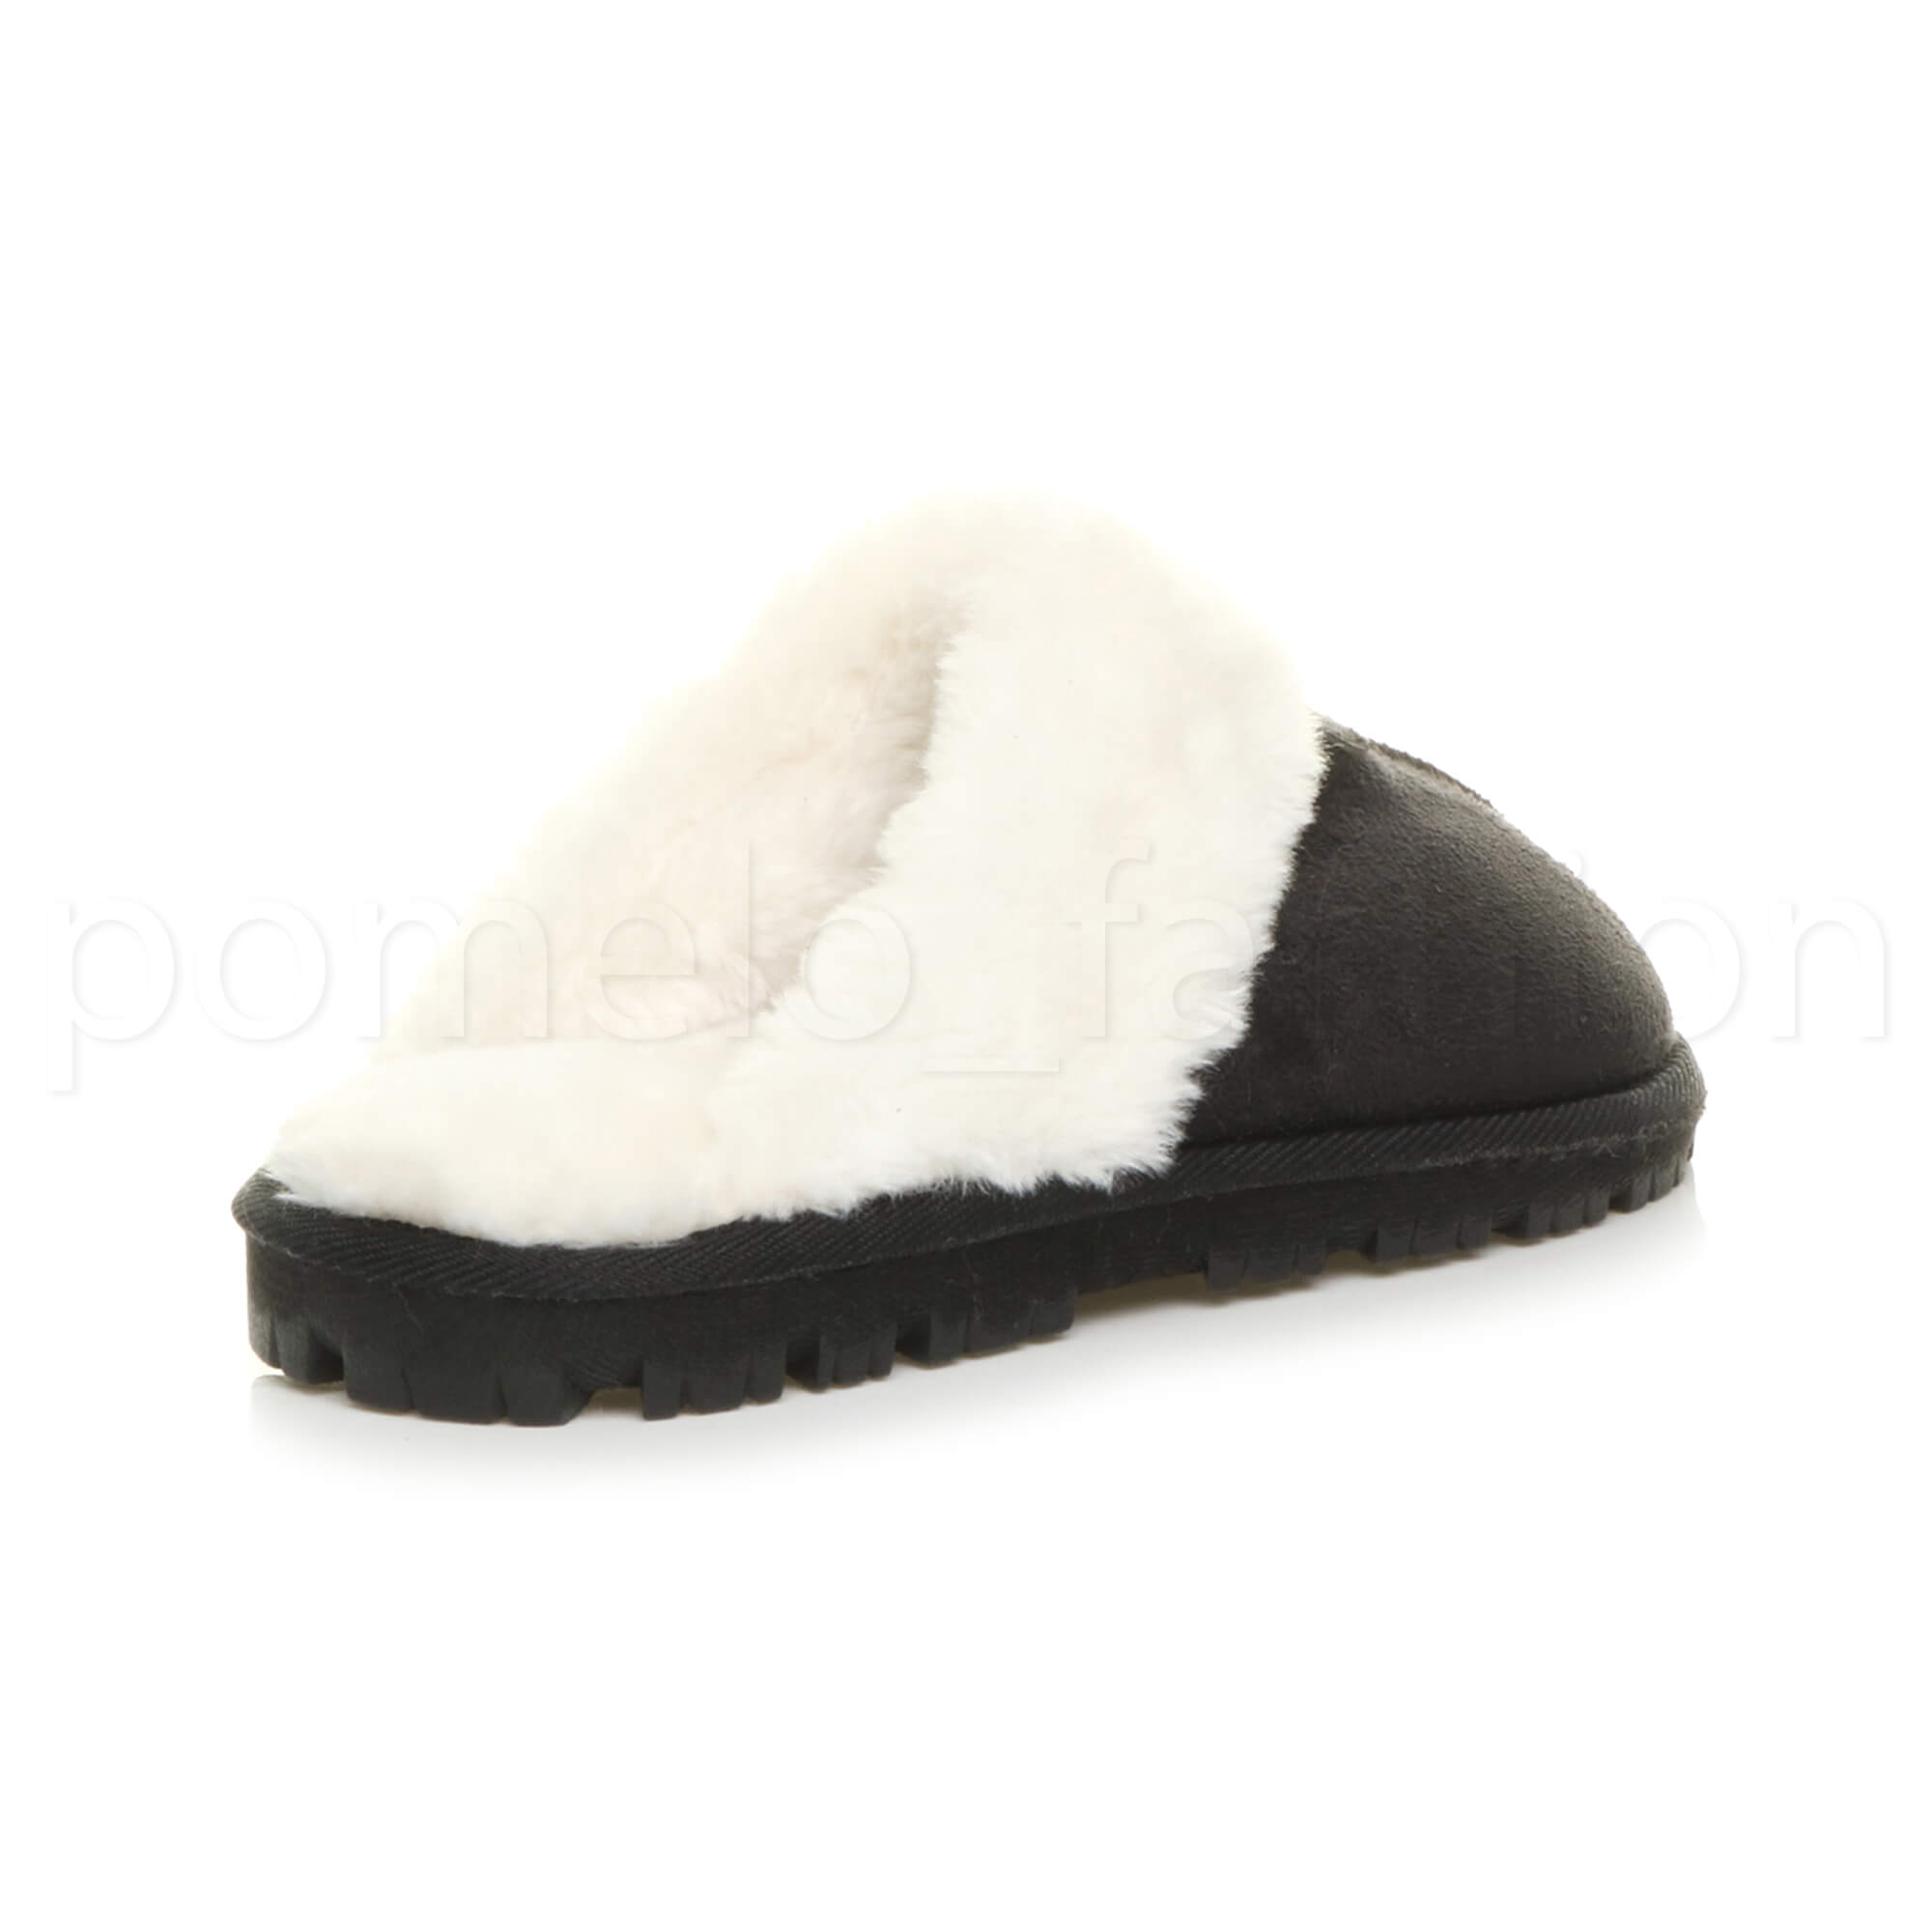 WOMENS-LADIES-FLAT-FUR-LINED-COMFORTABLE-WINTER-MULES-SLIPPERS-HOUSE-SHOES-SIZE thumbnail 26